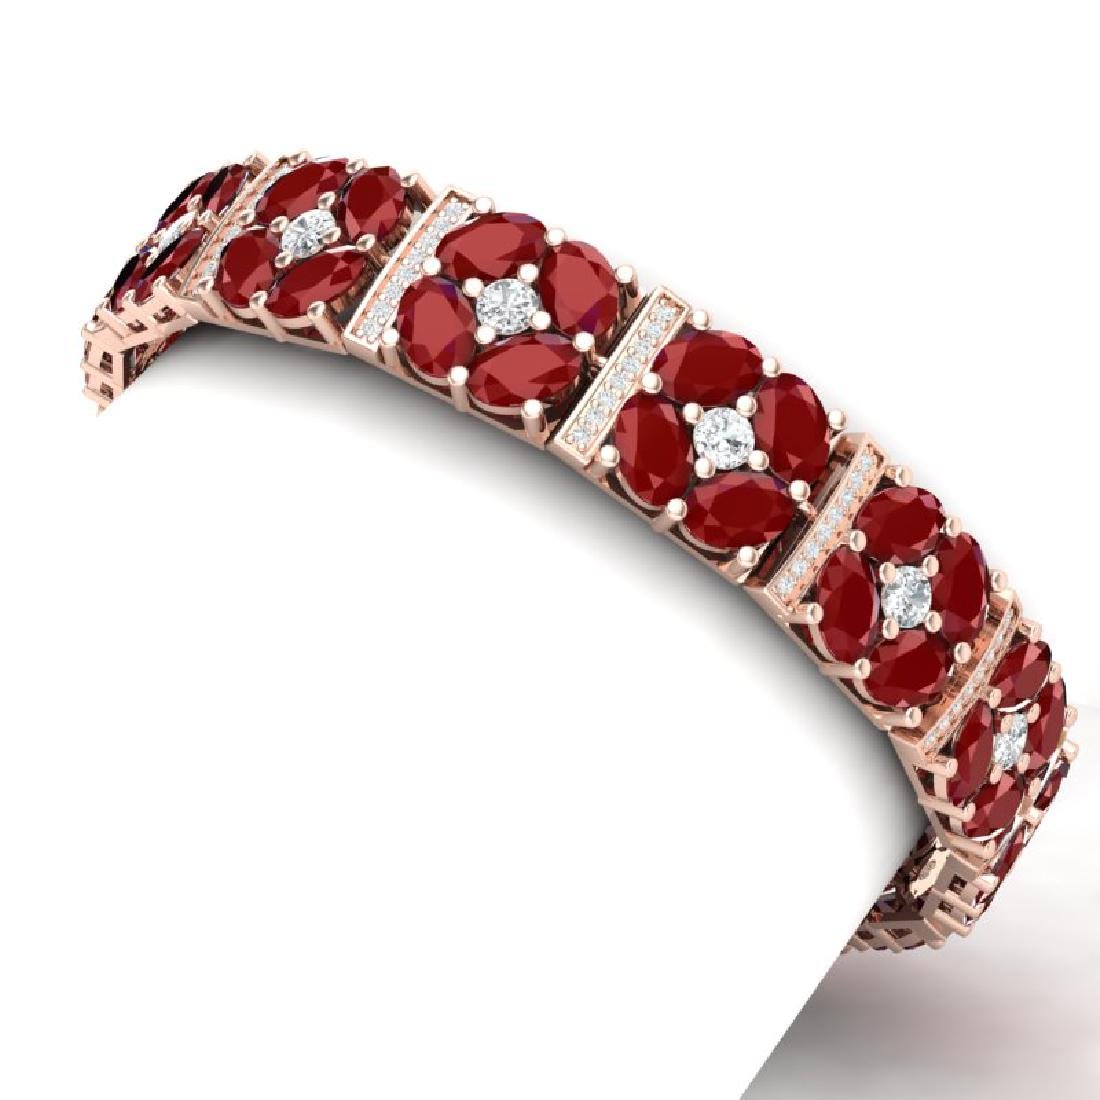 48.04 CTW Royalty Ruby & VS Diamond Bracelet 18K Rose - 2